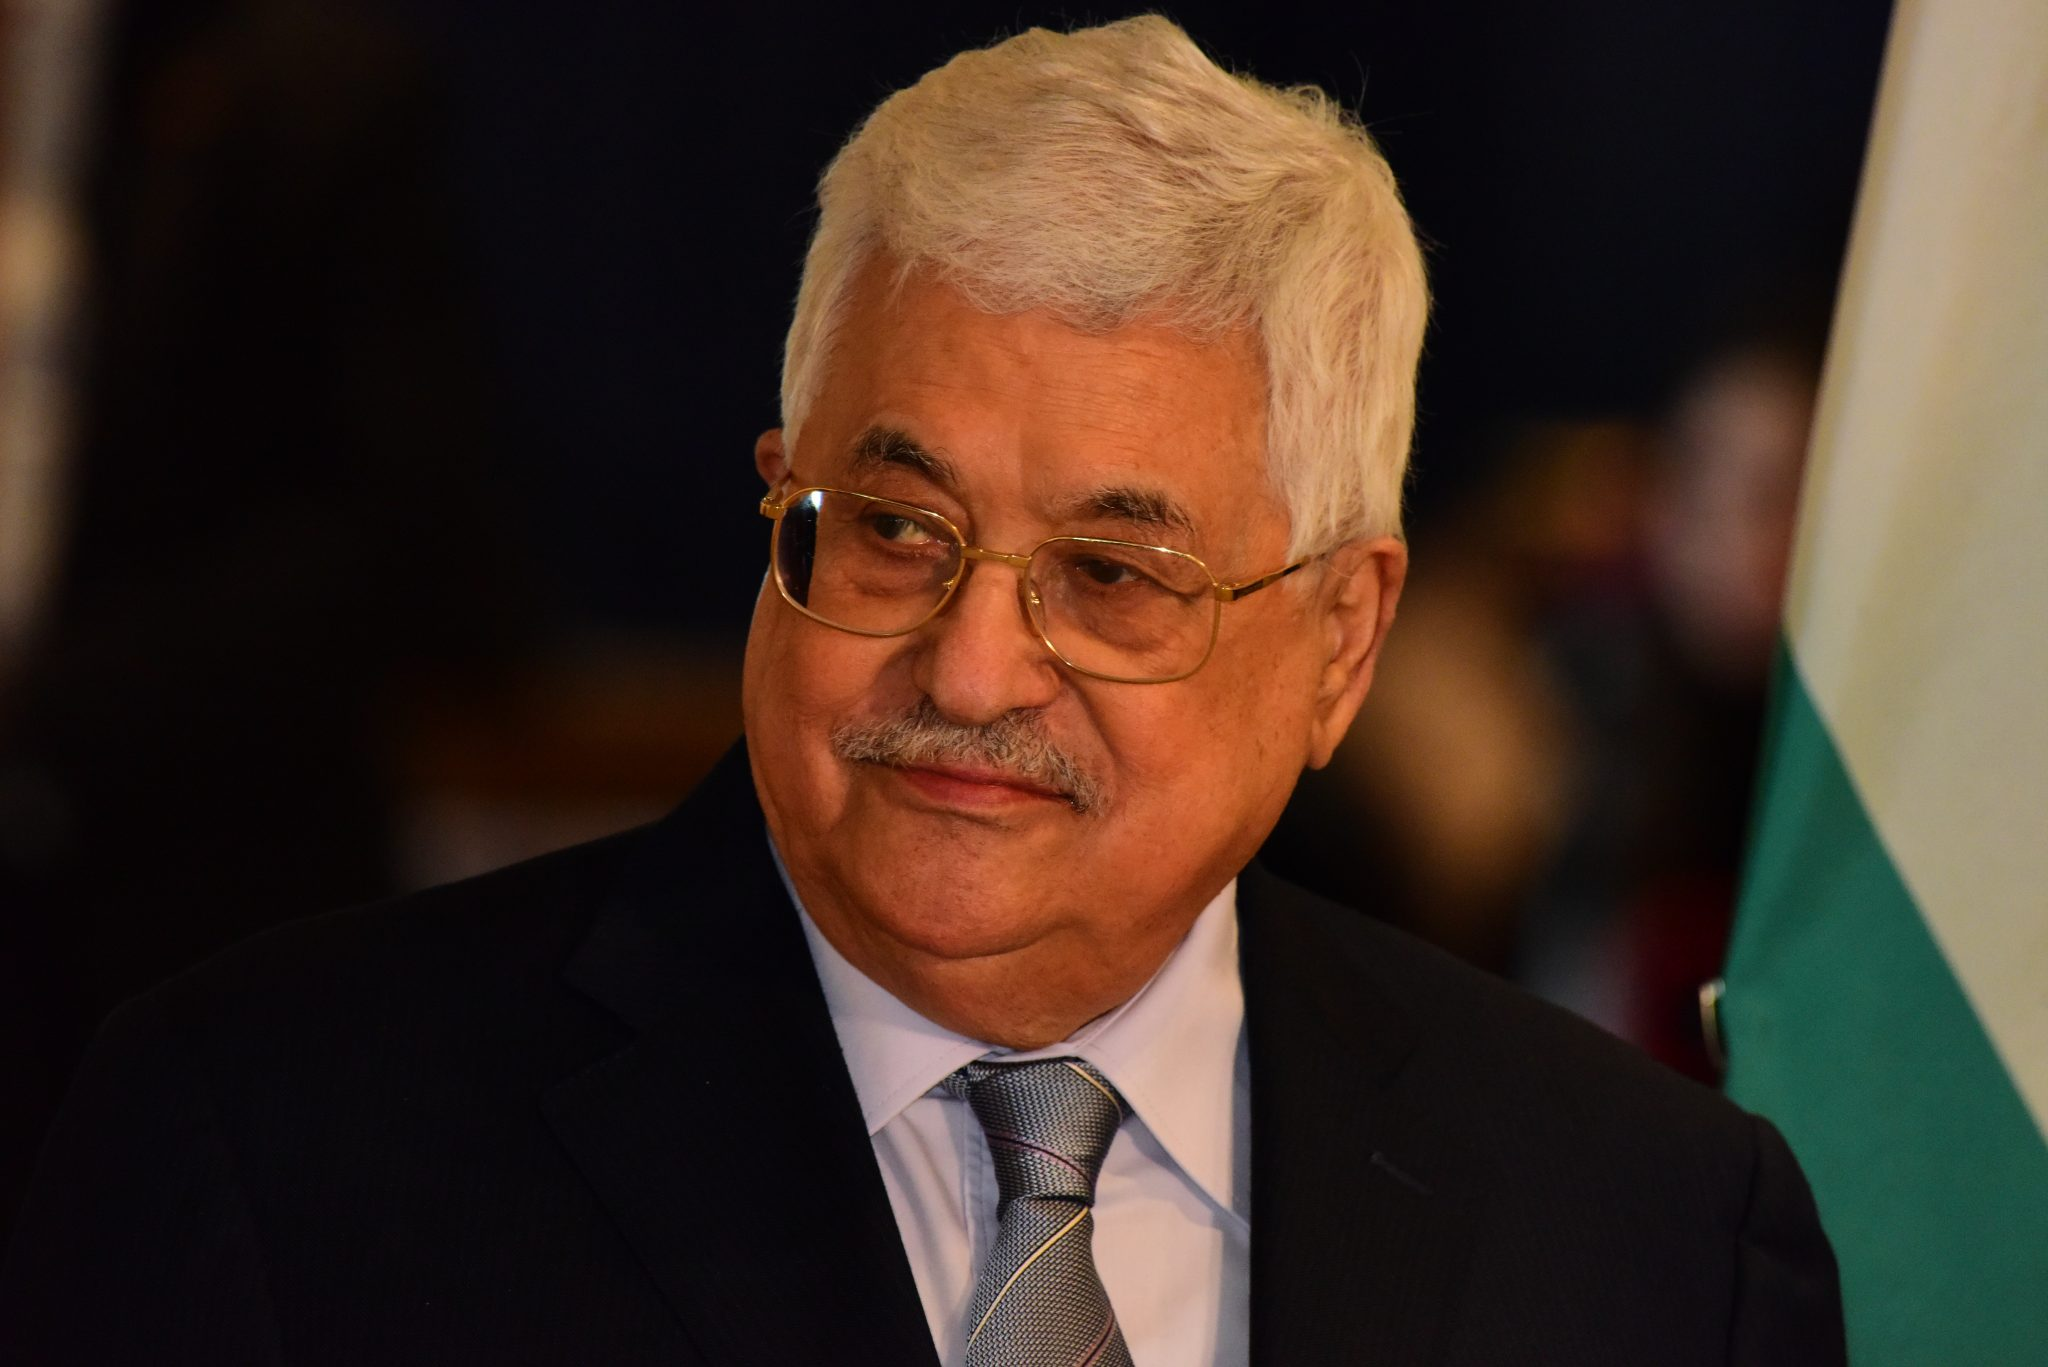 Image of Palestinian Authority President Mahmoud Abbas, illustrating piece on a pro- Palestine author accusing Israel of Holocaust -like offenses (a katz, Shutterstock.com) spectator.org